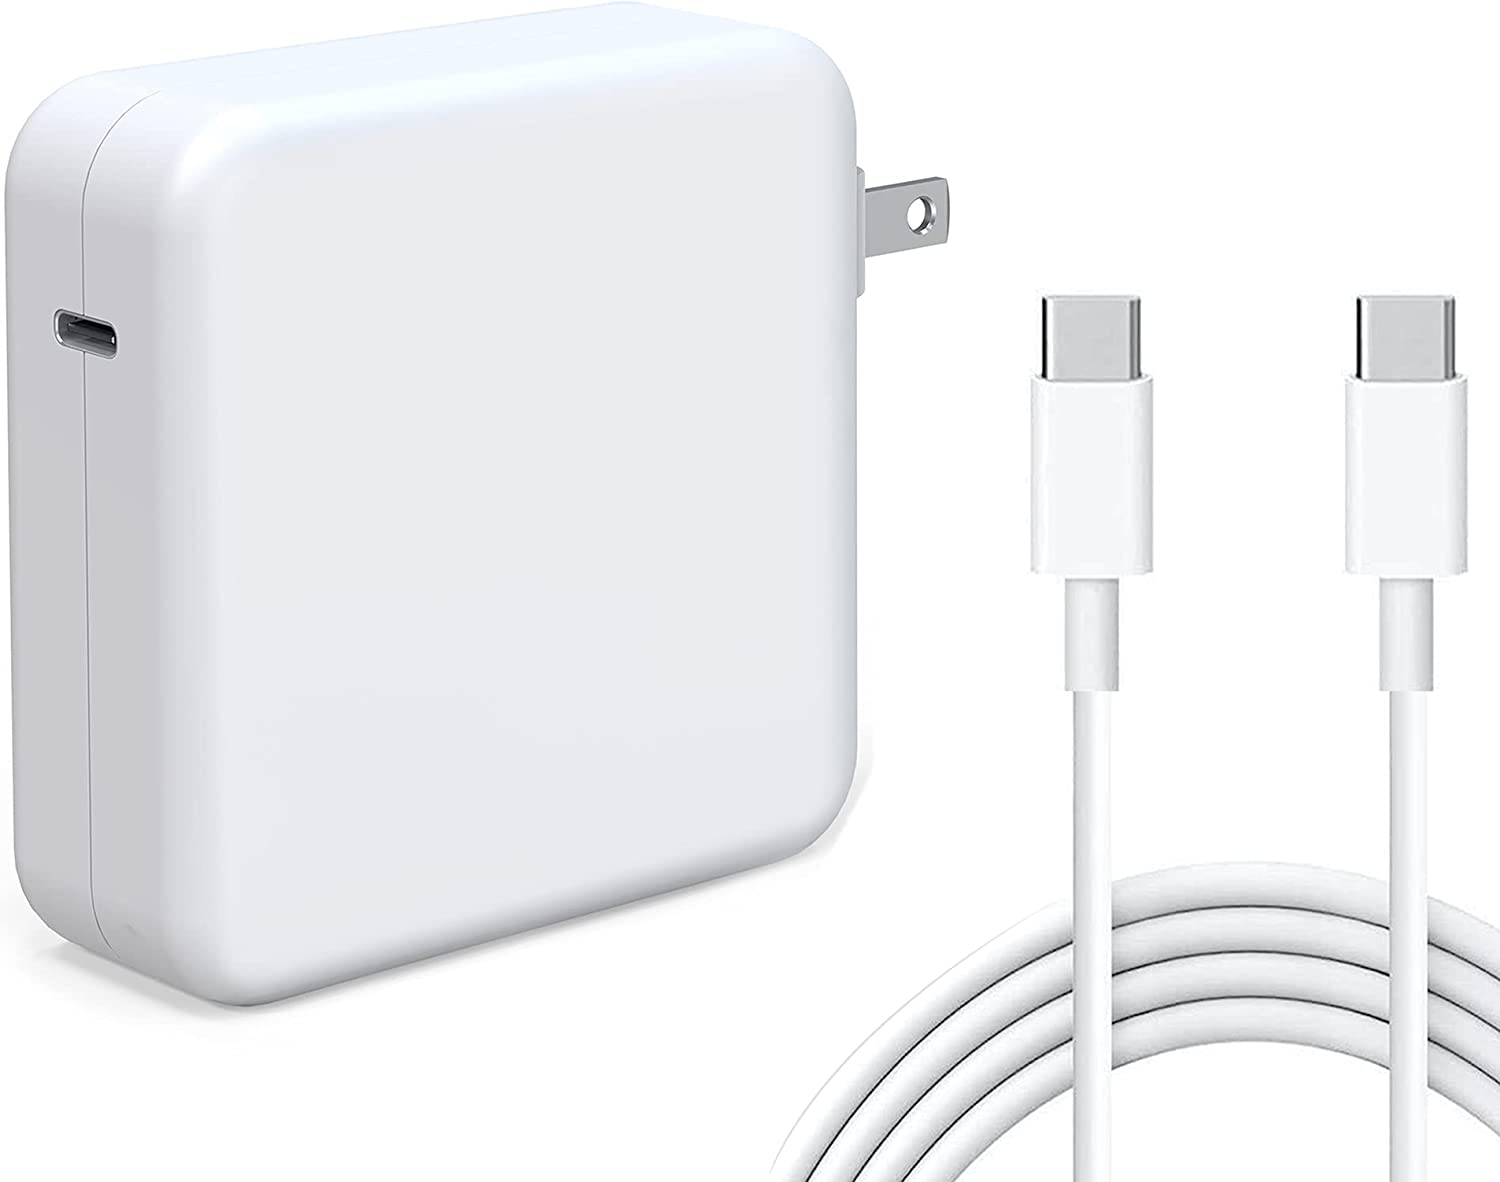 Tissyee 61W USB C Power Adapter, Compatible with MacBook Pro Charger, for MacBook Pro 13 15 16 inch 2020 2019 2018 New Air 13 inch,Works with 61W 30W, Included USB-C to USB-C Charge Cable (6.6ft/2m)